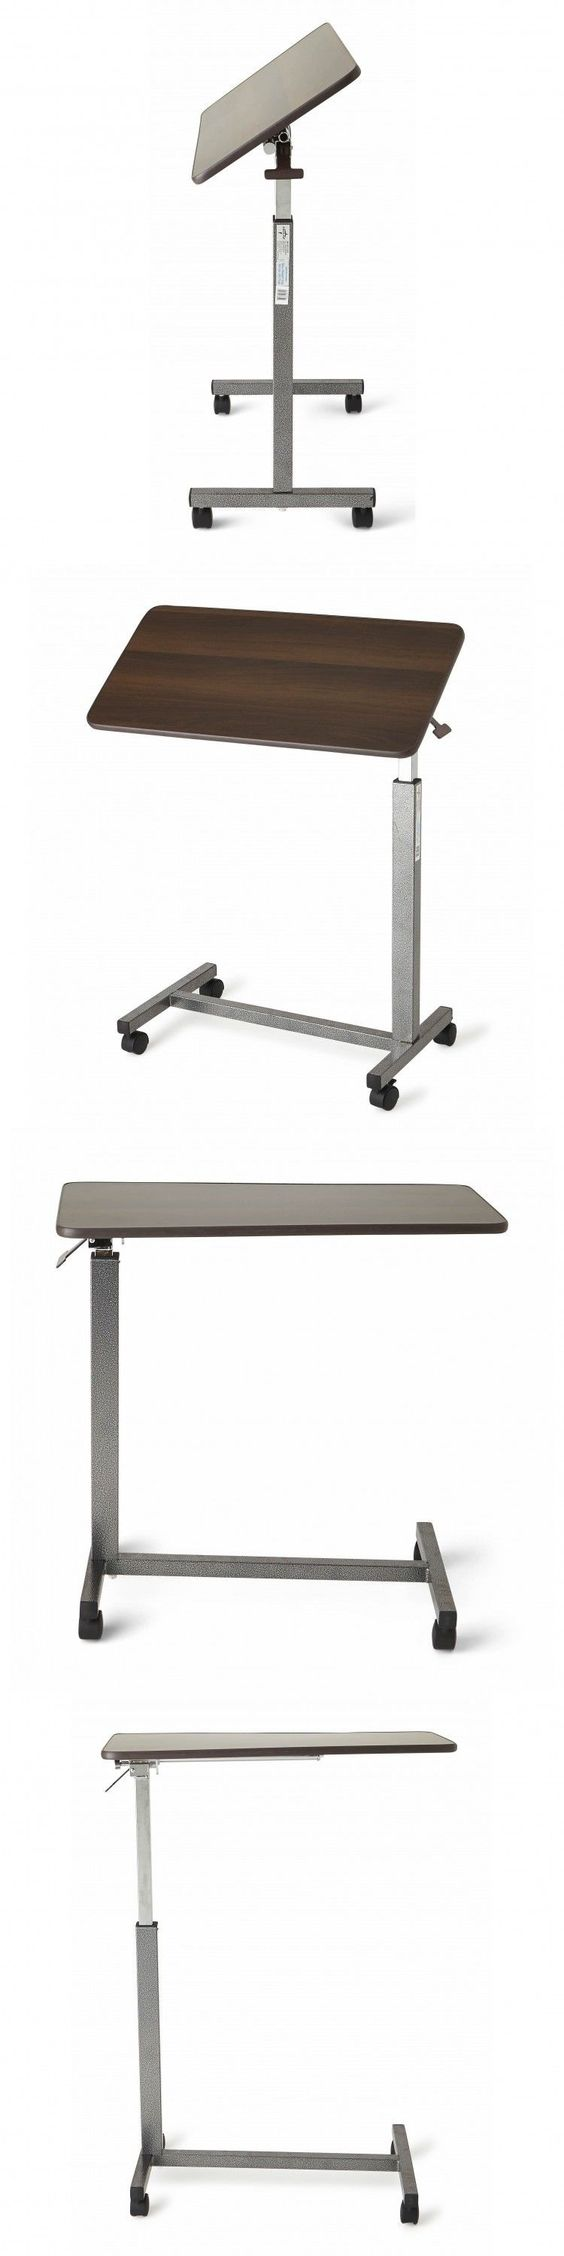 Rolling bed tray table - Bed And Chair Tables Over The Bed Table Rolling Adjustable Tilt Hospital Cart Tray Bedridden